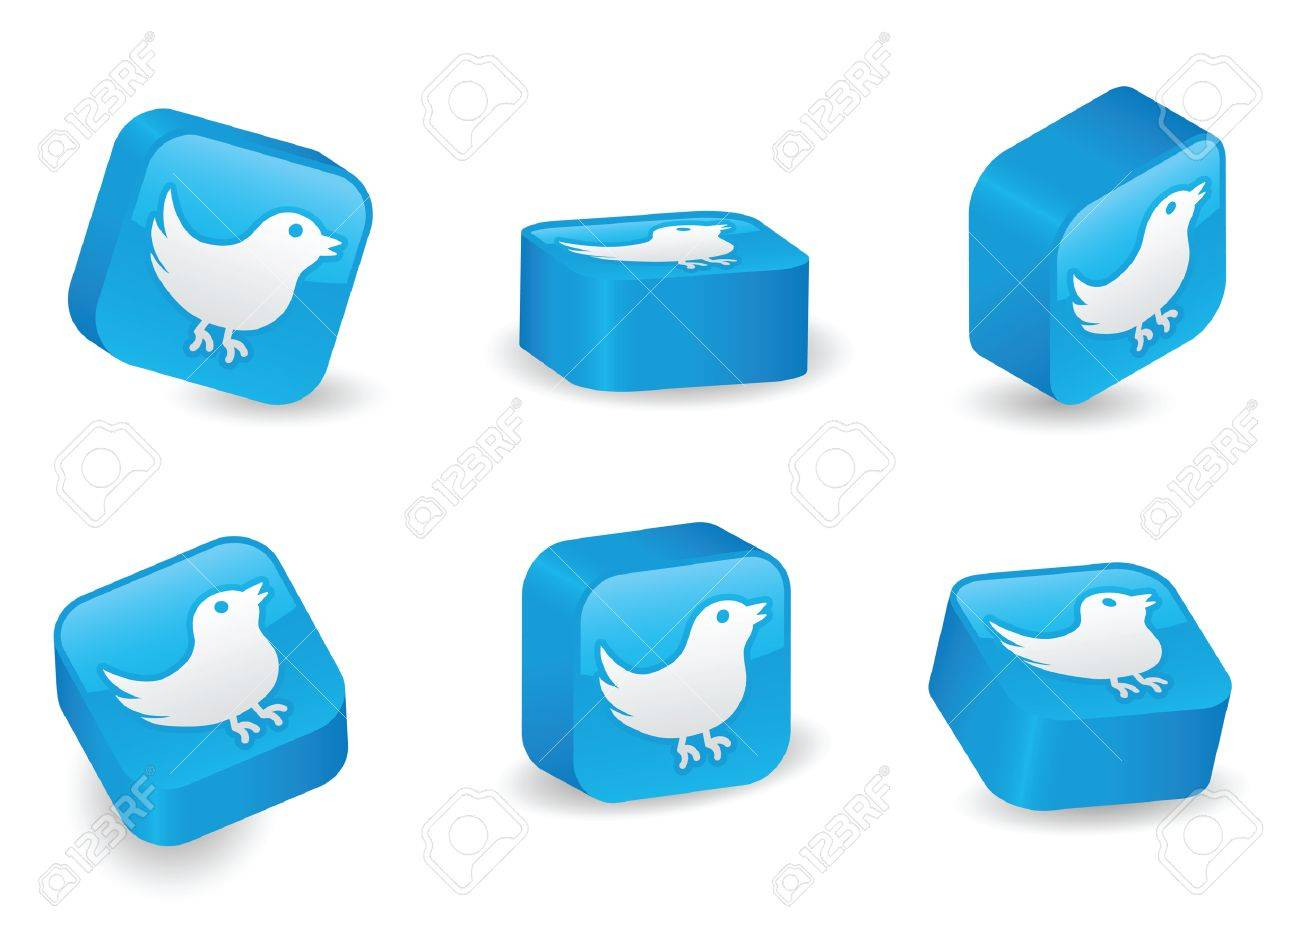 Bird icon on vibrant, glossy, three-dimensional blocks in various positions Stock Vector - 5300021